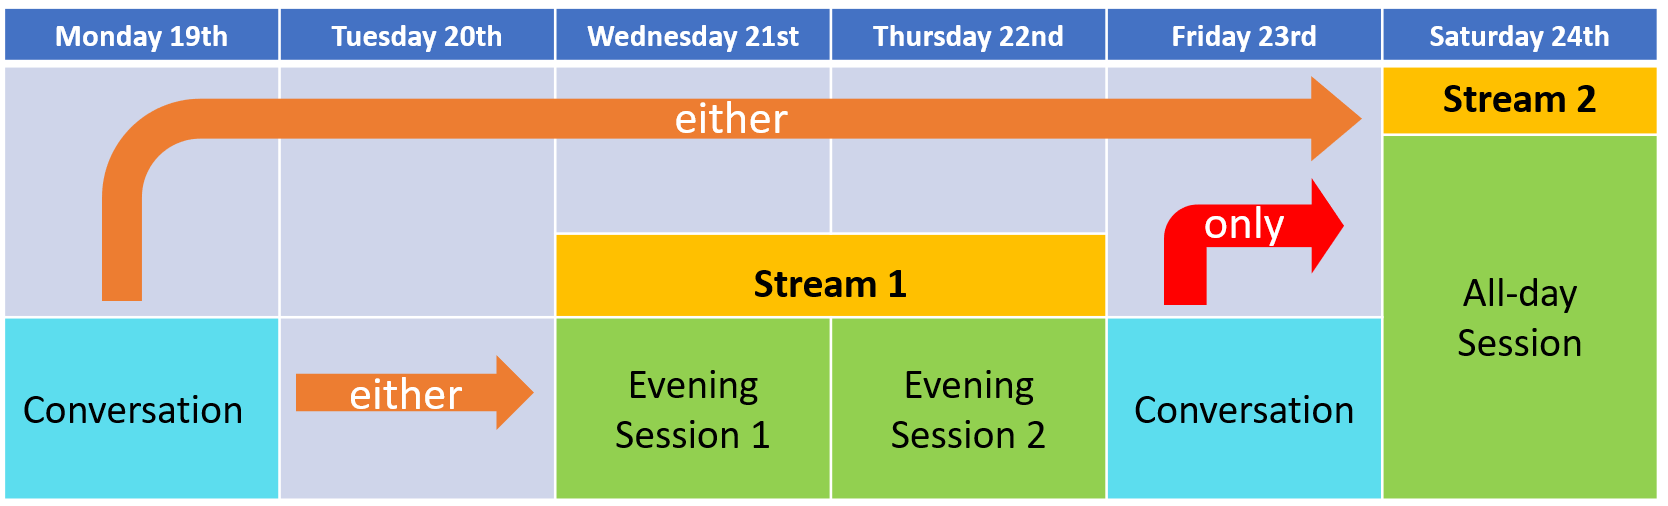 Interstate_Training_Schedule.PNG